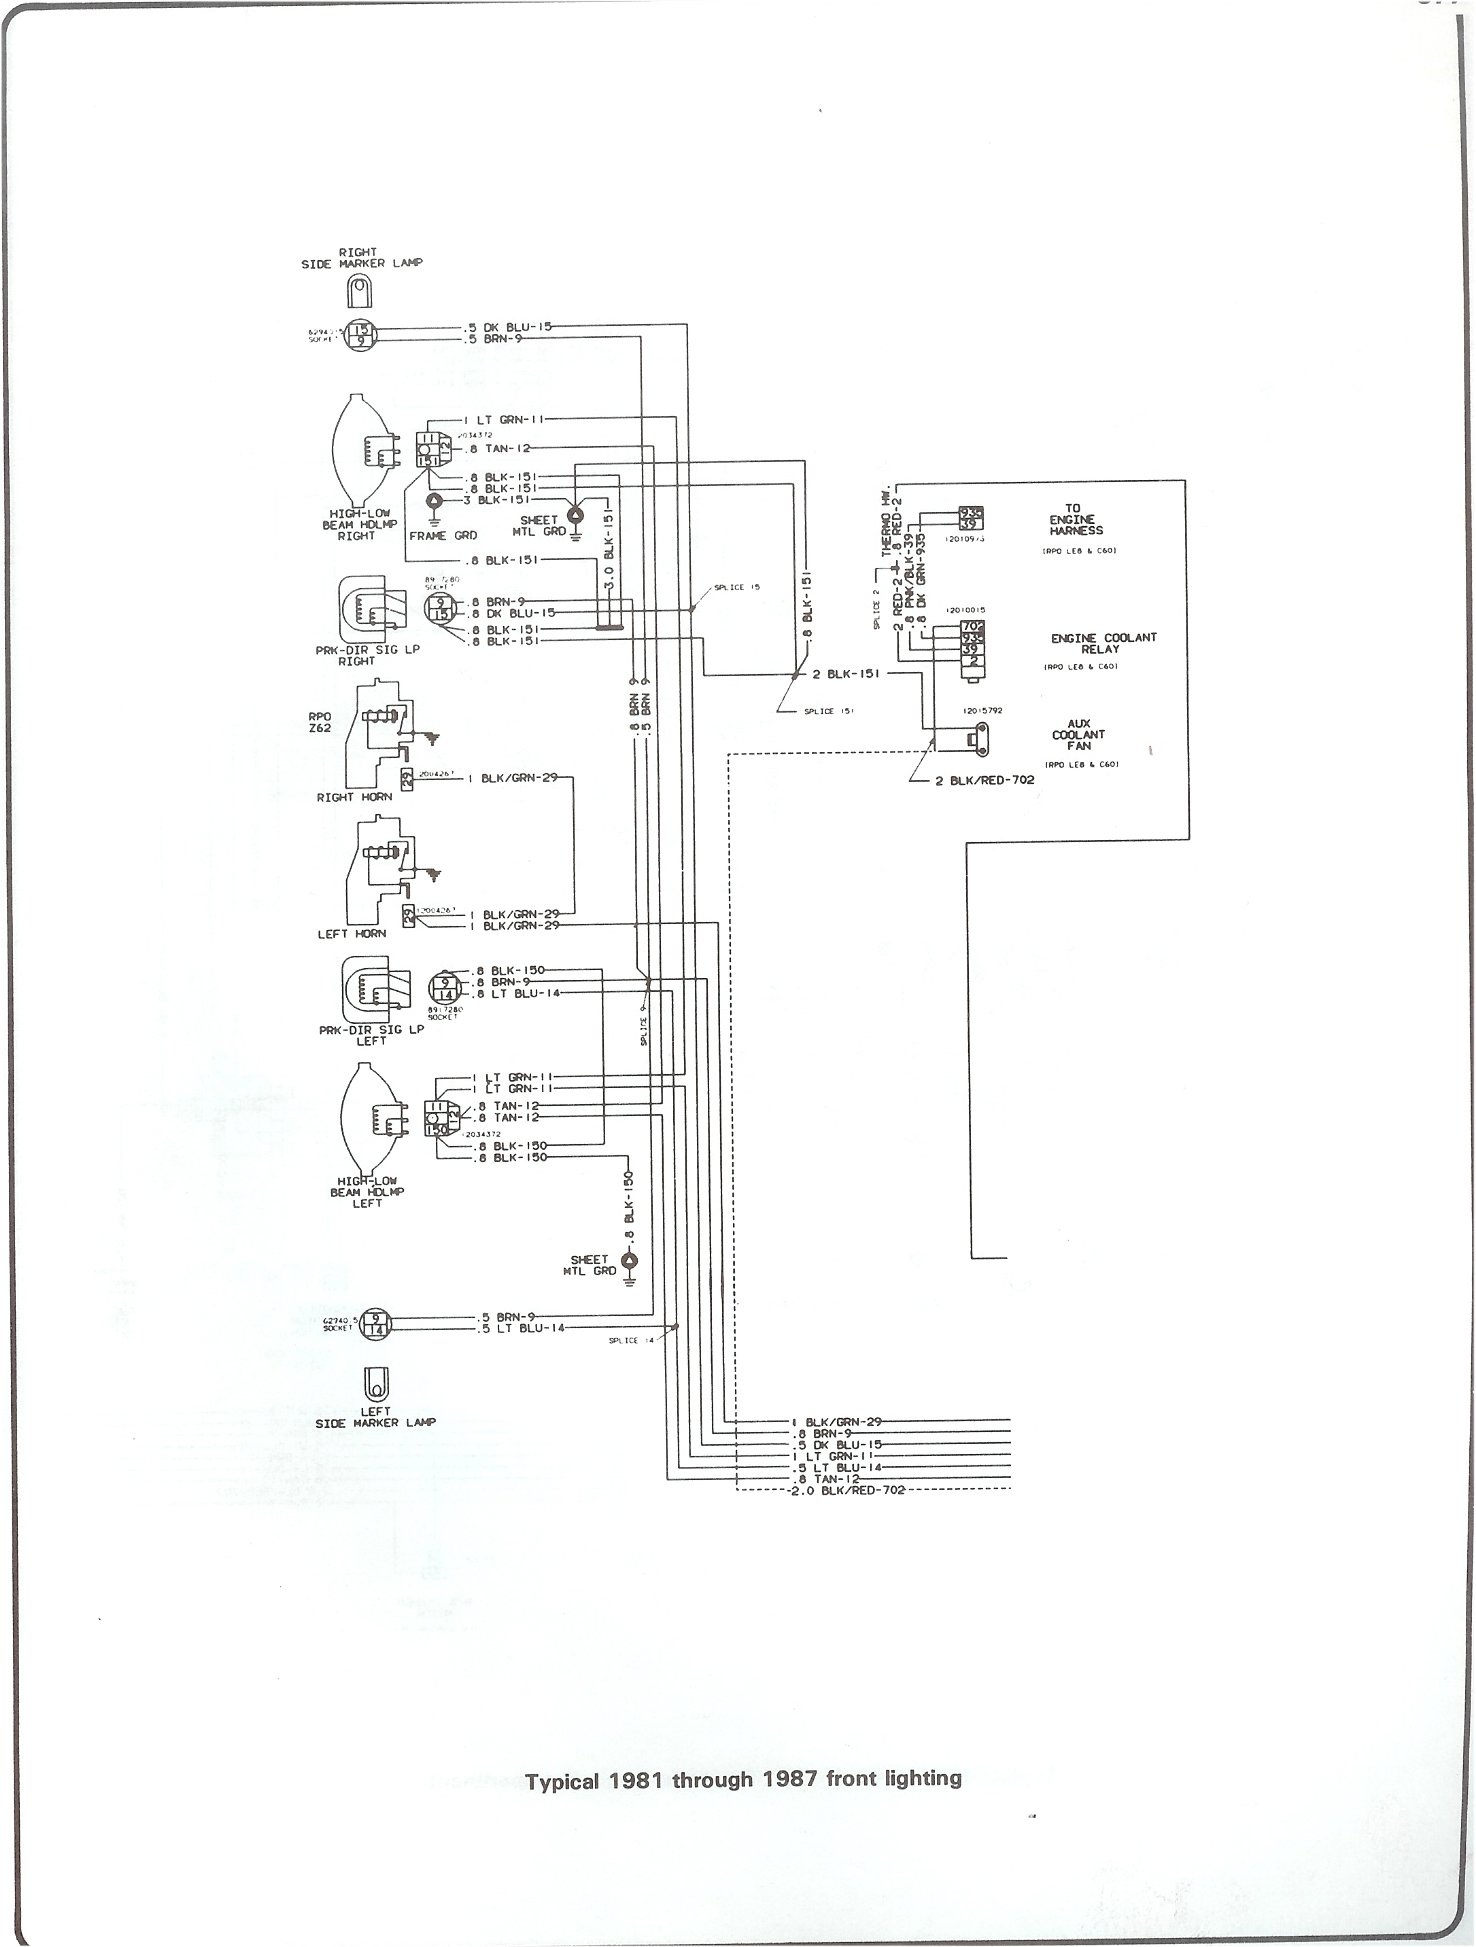 Complete 73-87 Wiring Diagrams | 1981 Chevy Silverado Wiring Harness |  | 73-87 Chevy Truck Forums